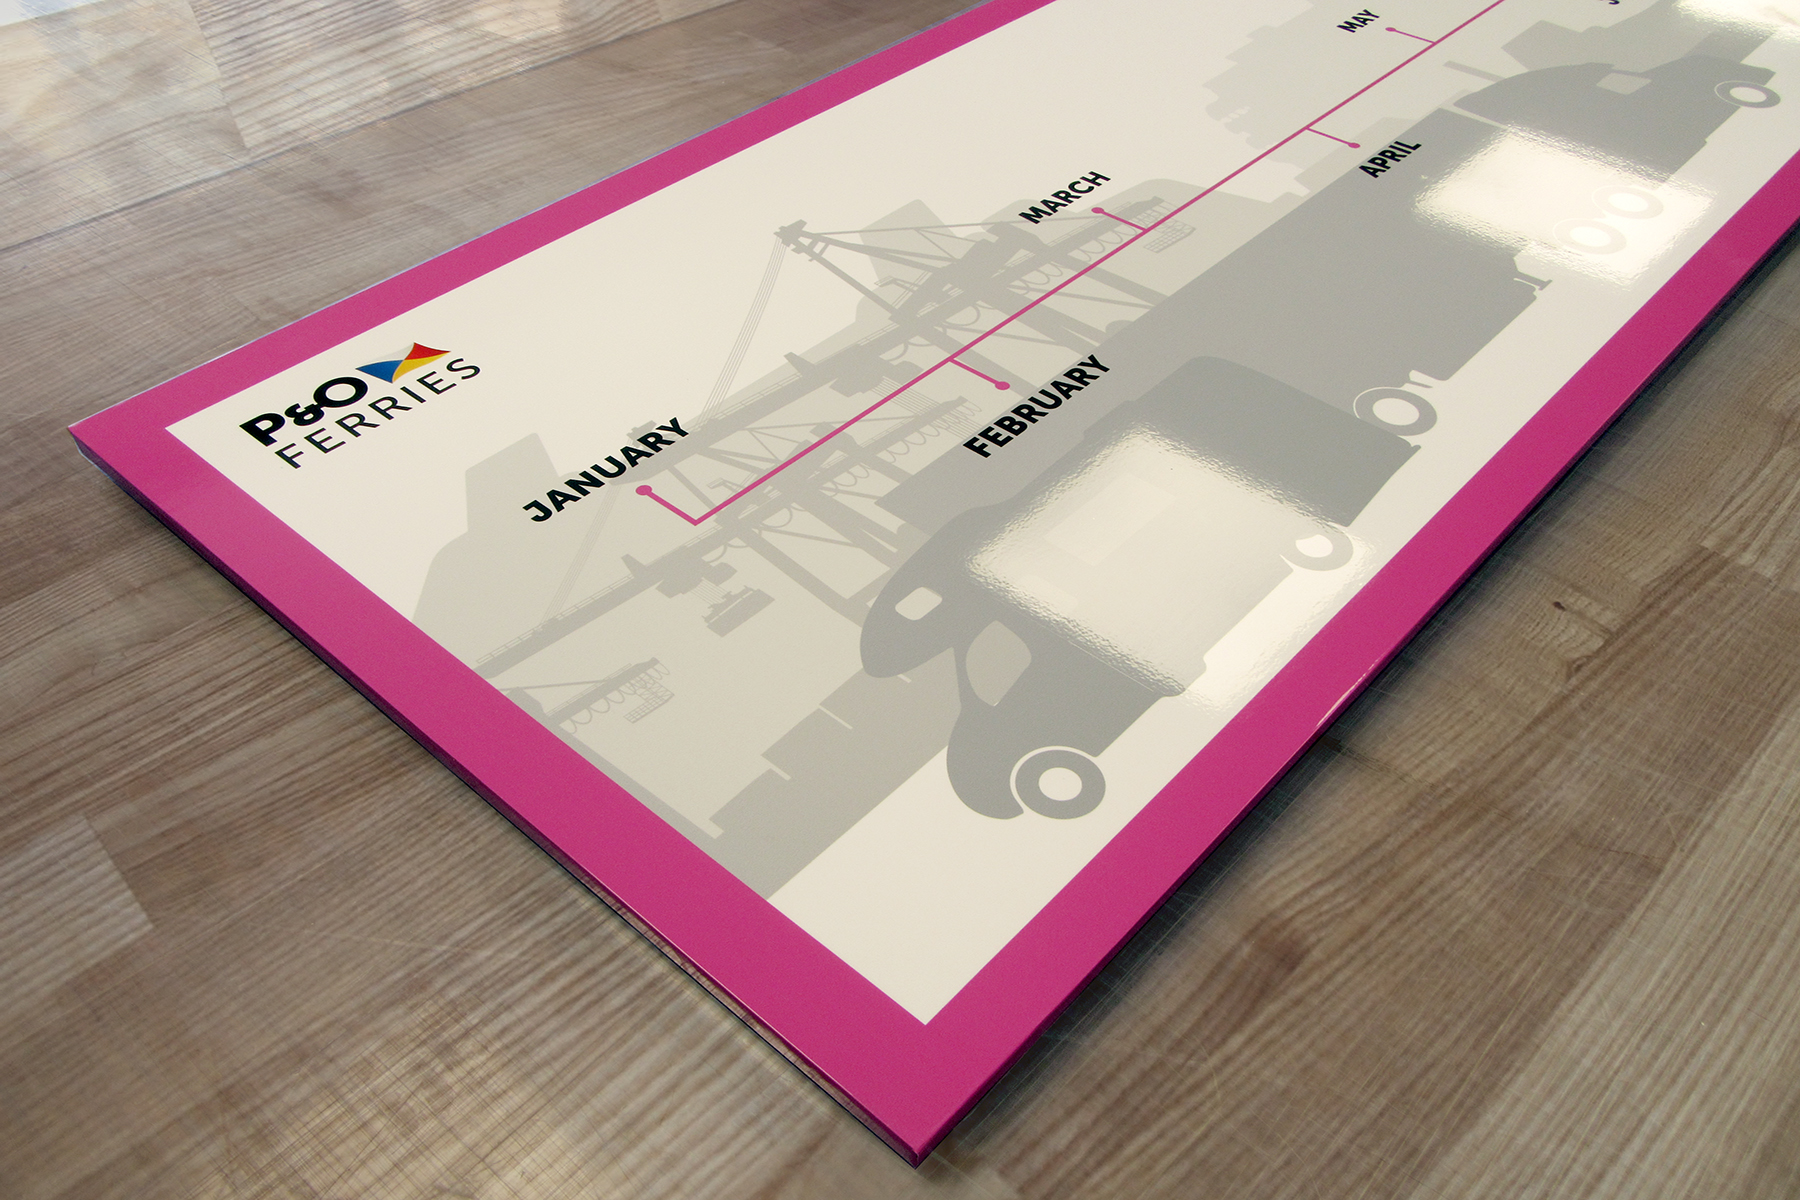 Printed whiteboards